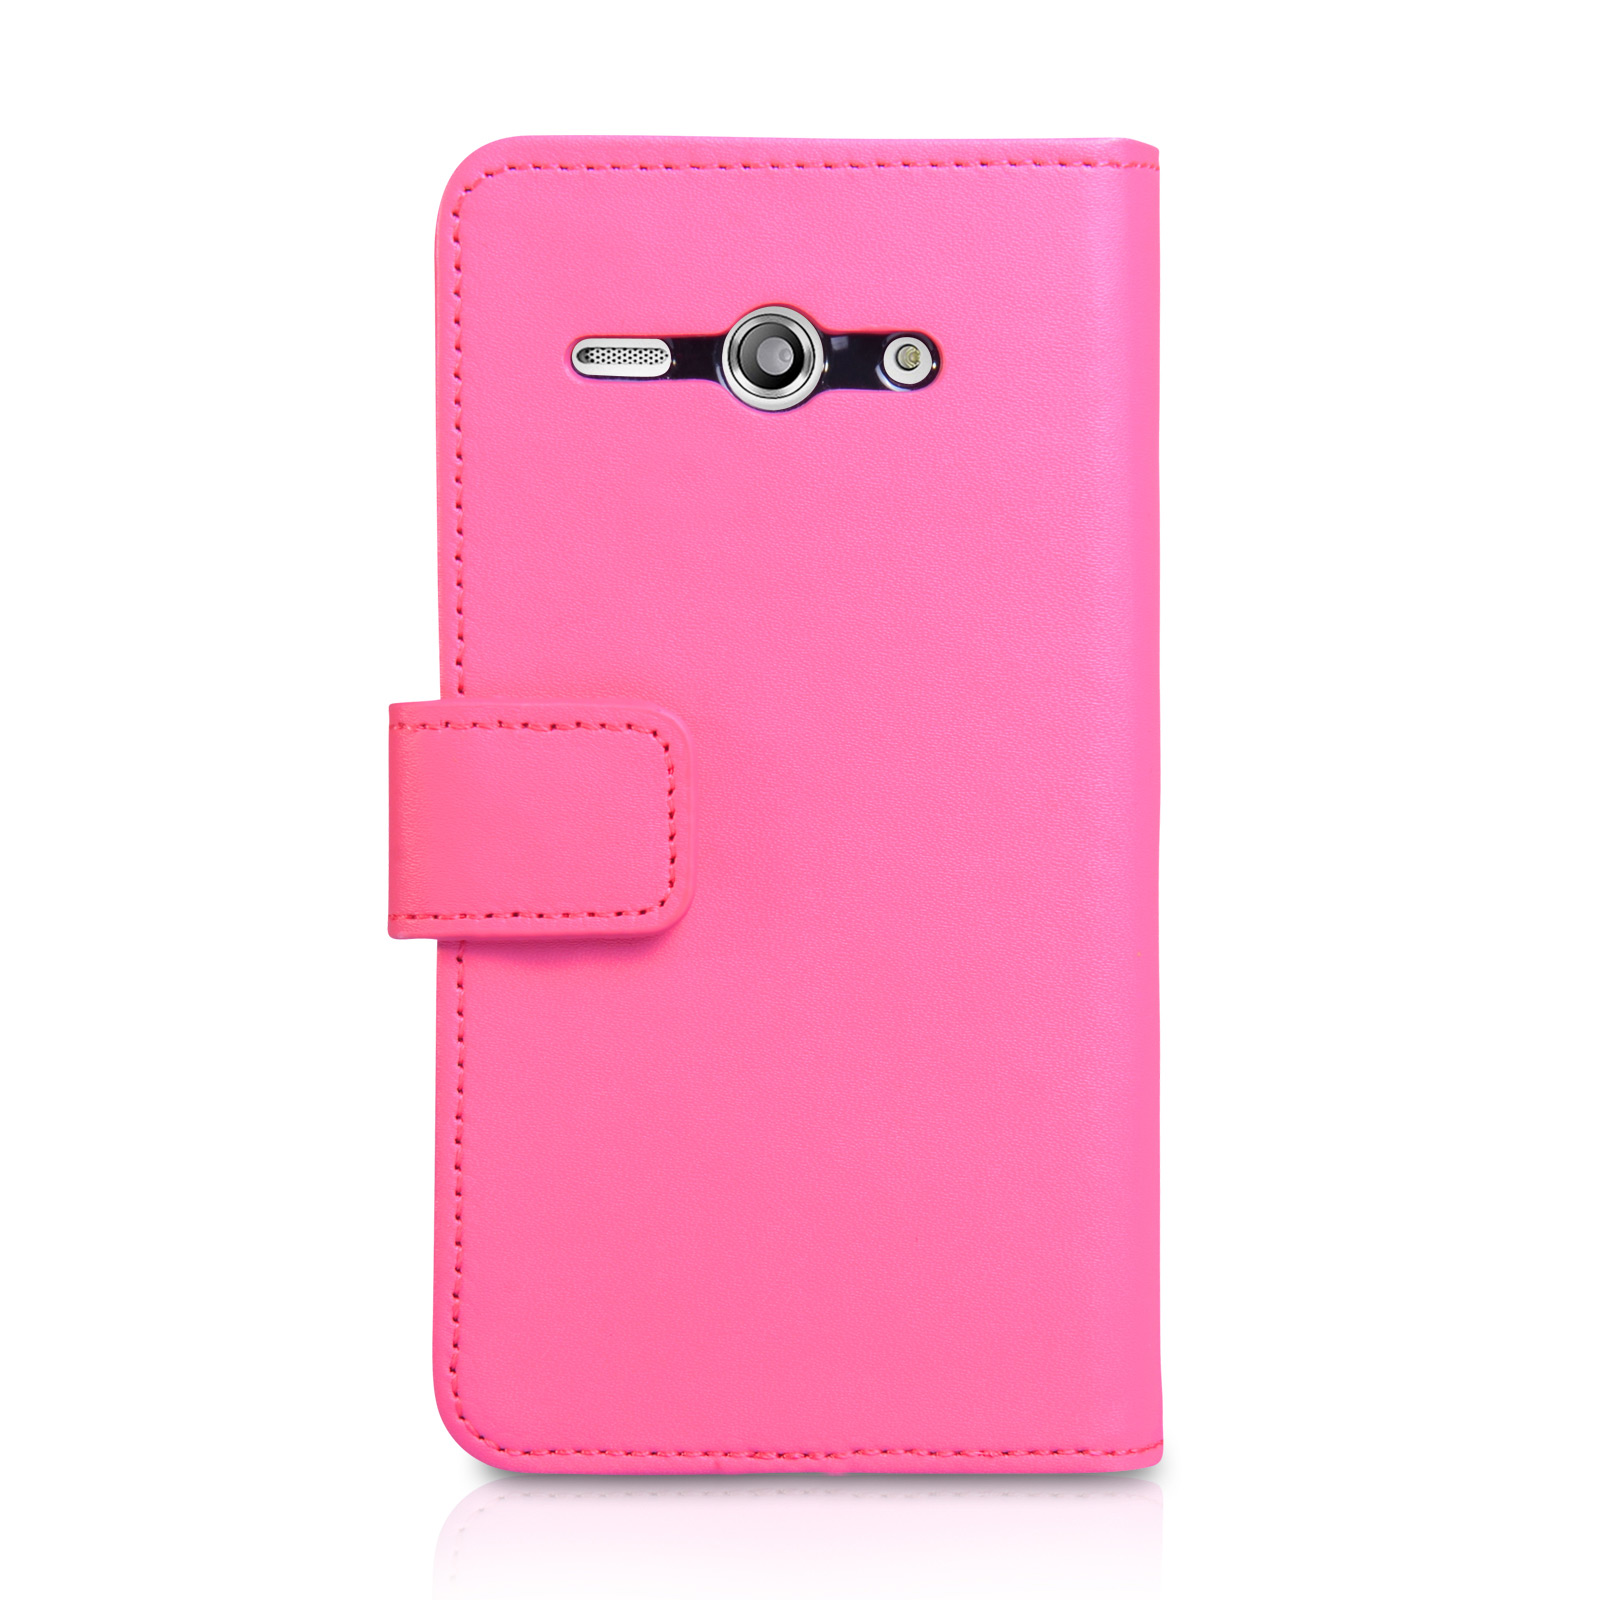 YouSave Huawei Ascend Y530 Leather-Effect Wallet Case - Hot Pink